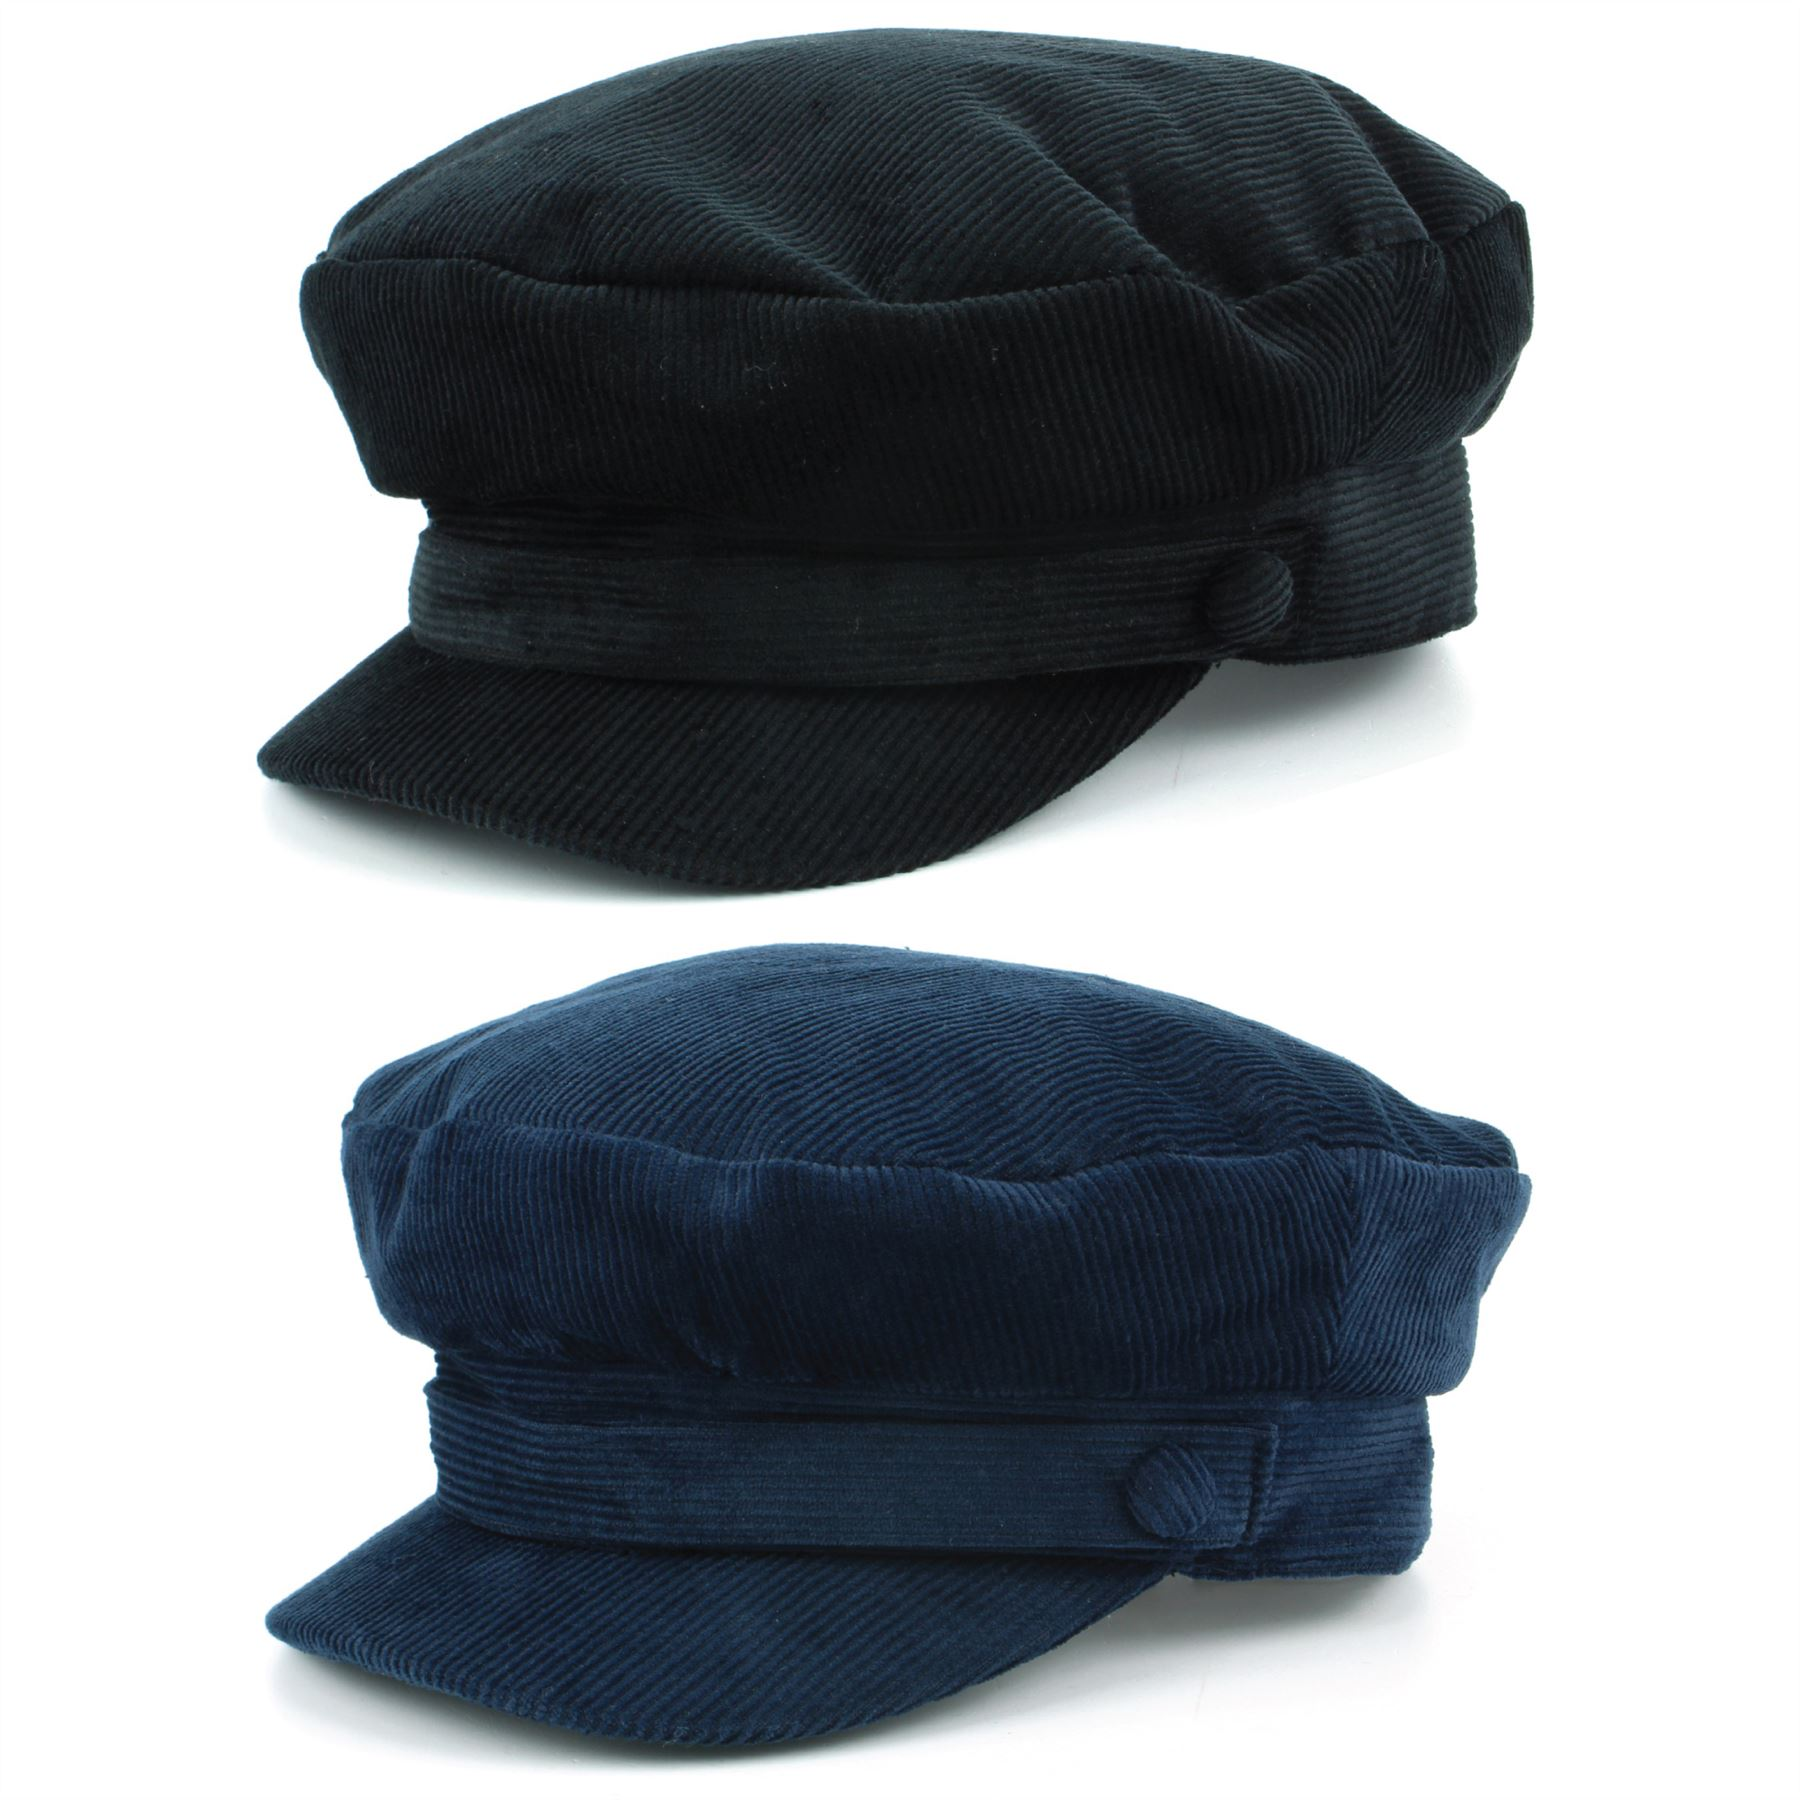 2a84d4cec23 Details about Captain s Cap Breton Hat Cord BLACK NAVY BLUE Mariner Lennon  Fisherman Fiddler